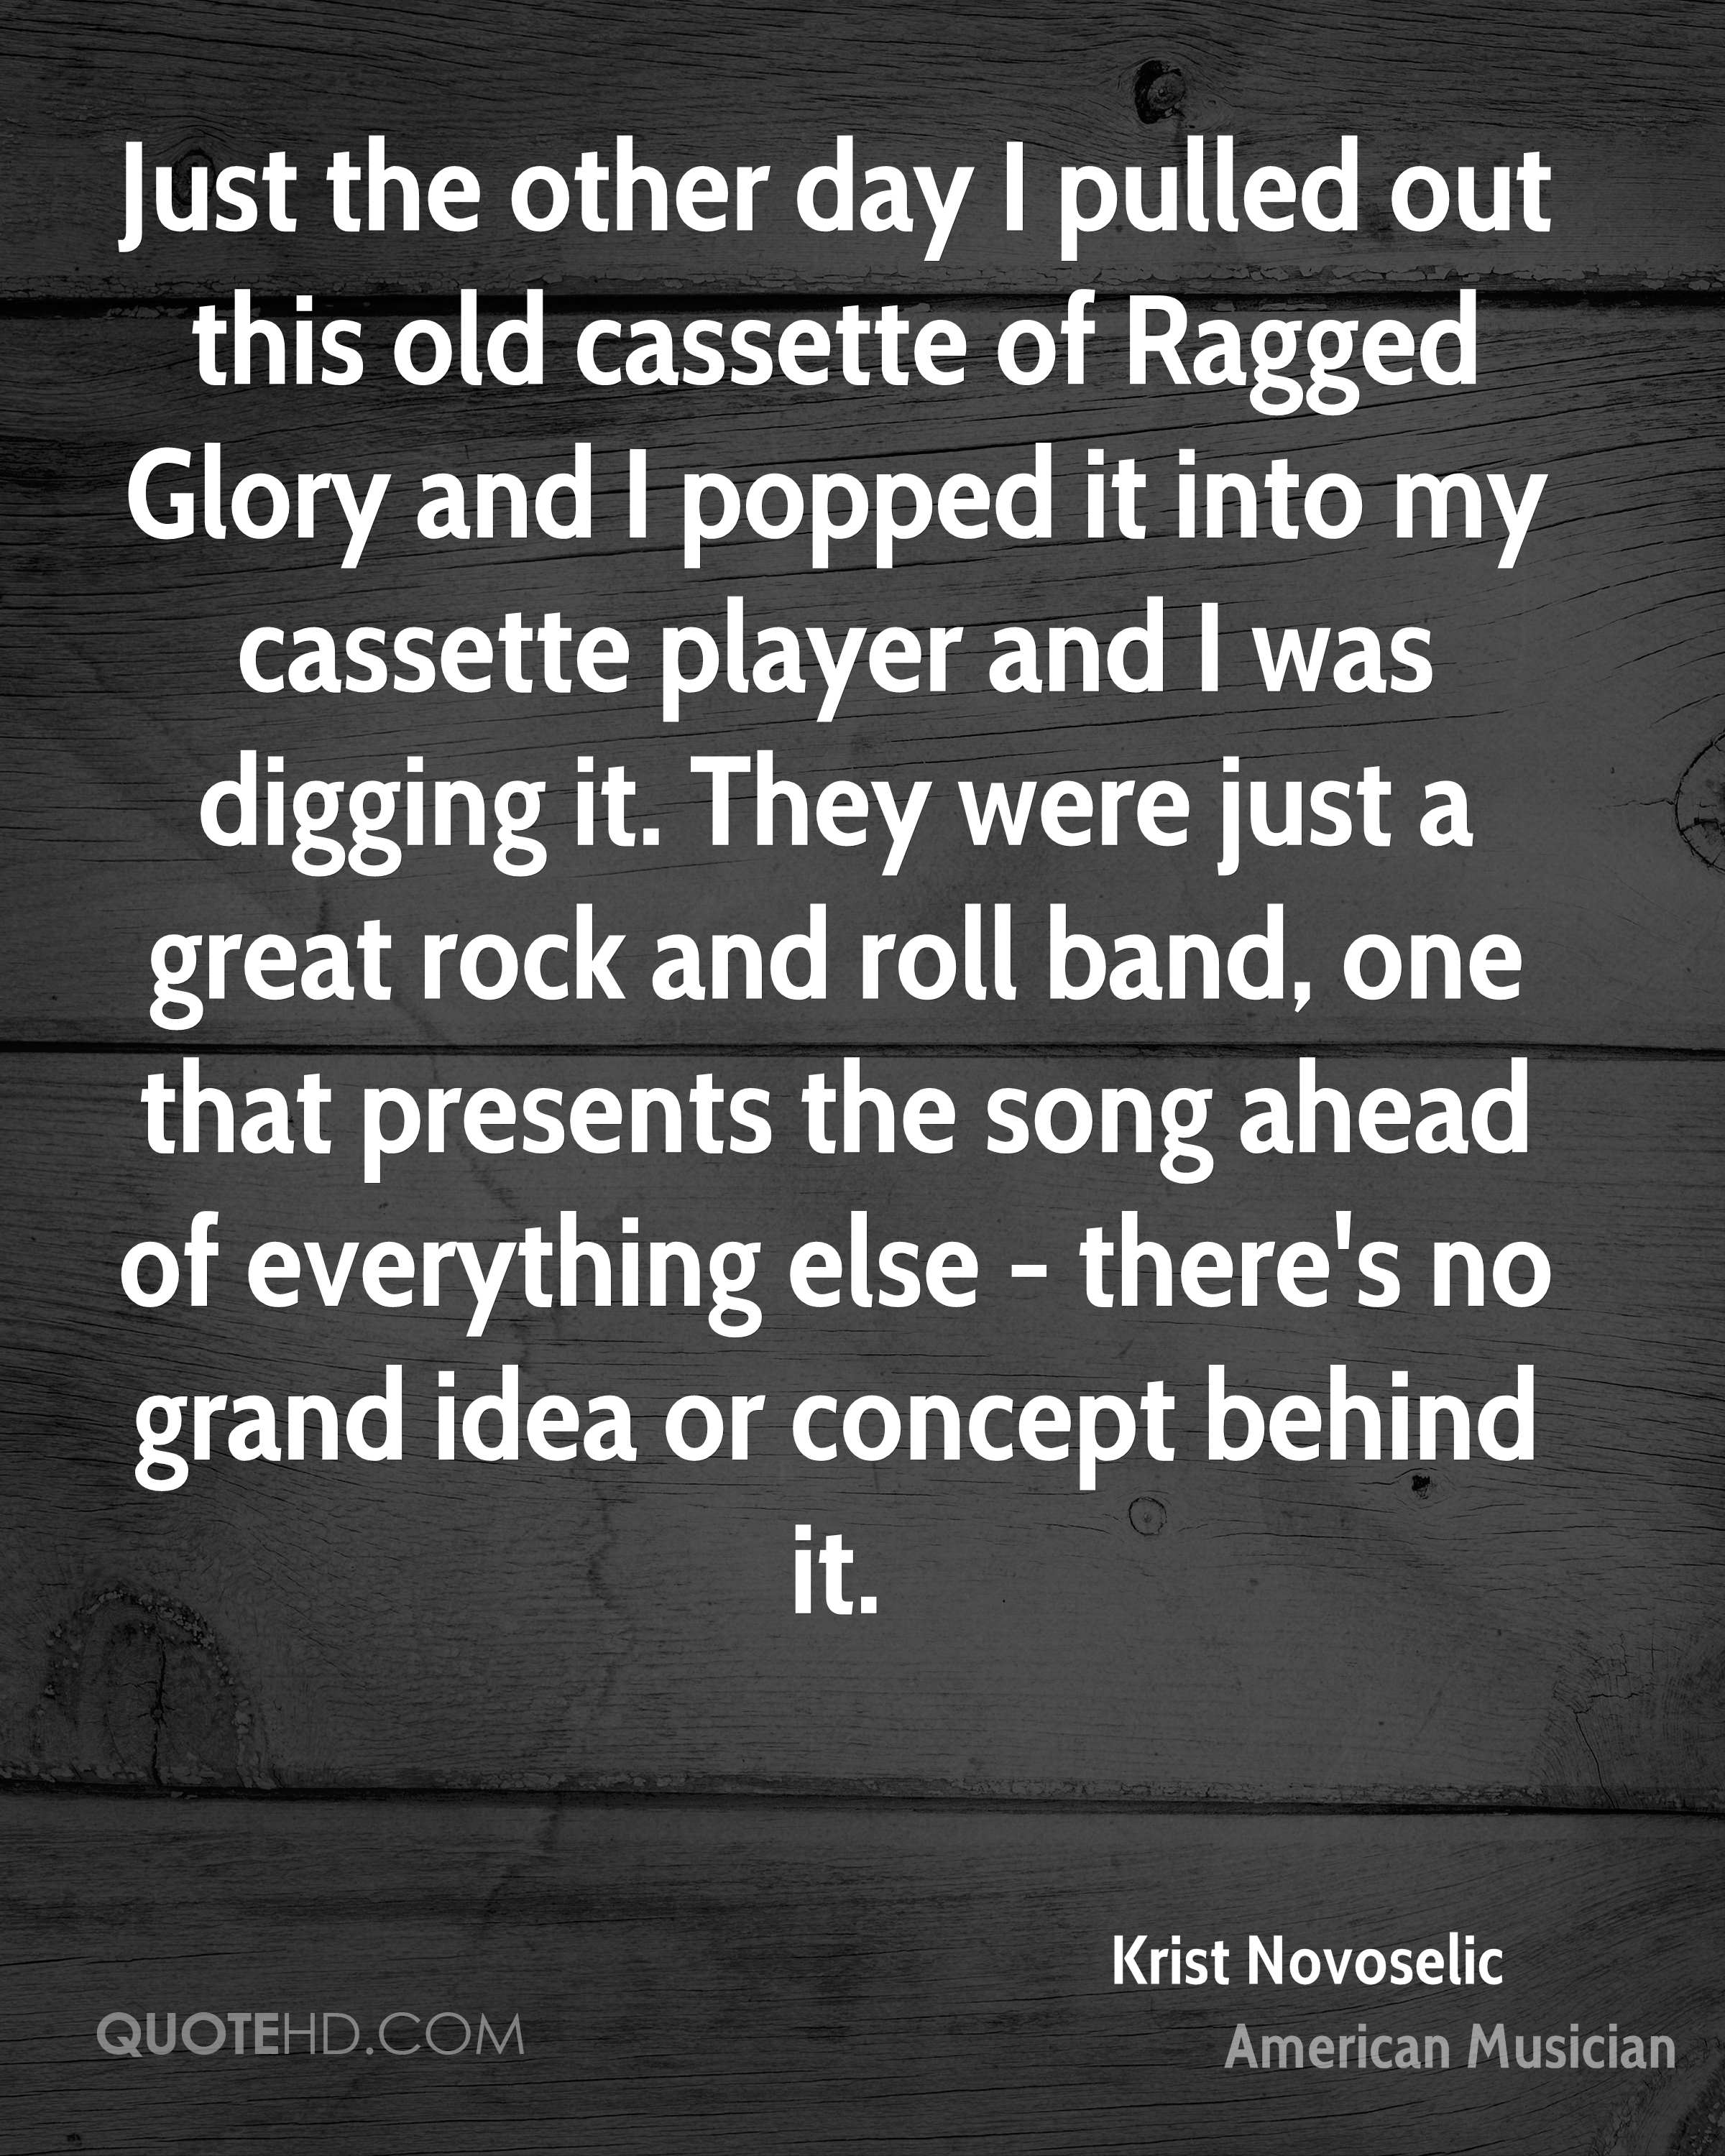 Just the other day I pulled out this old cassette of Ragged Glory and I popped it into my cassette player and I was digging it. They were just a great rock and roll band, one that presents the song ahead of everything else - there's no grand idea or concept behind it.